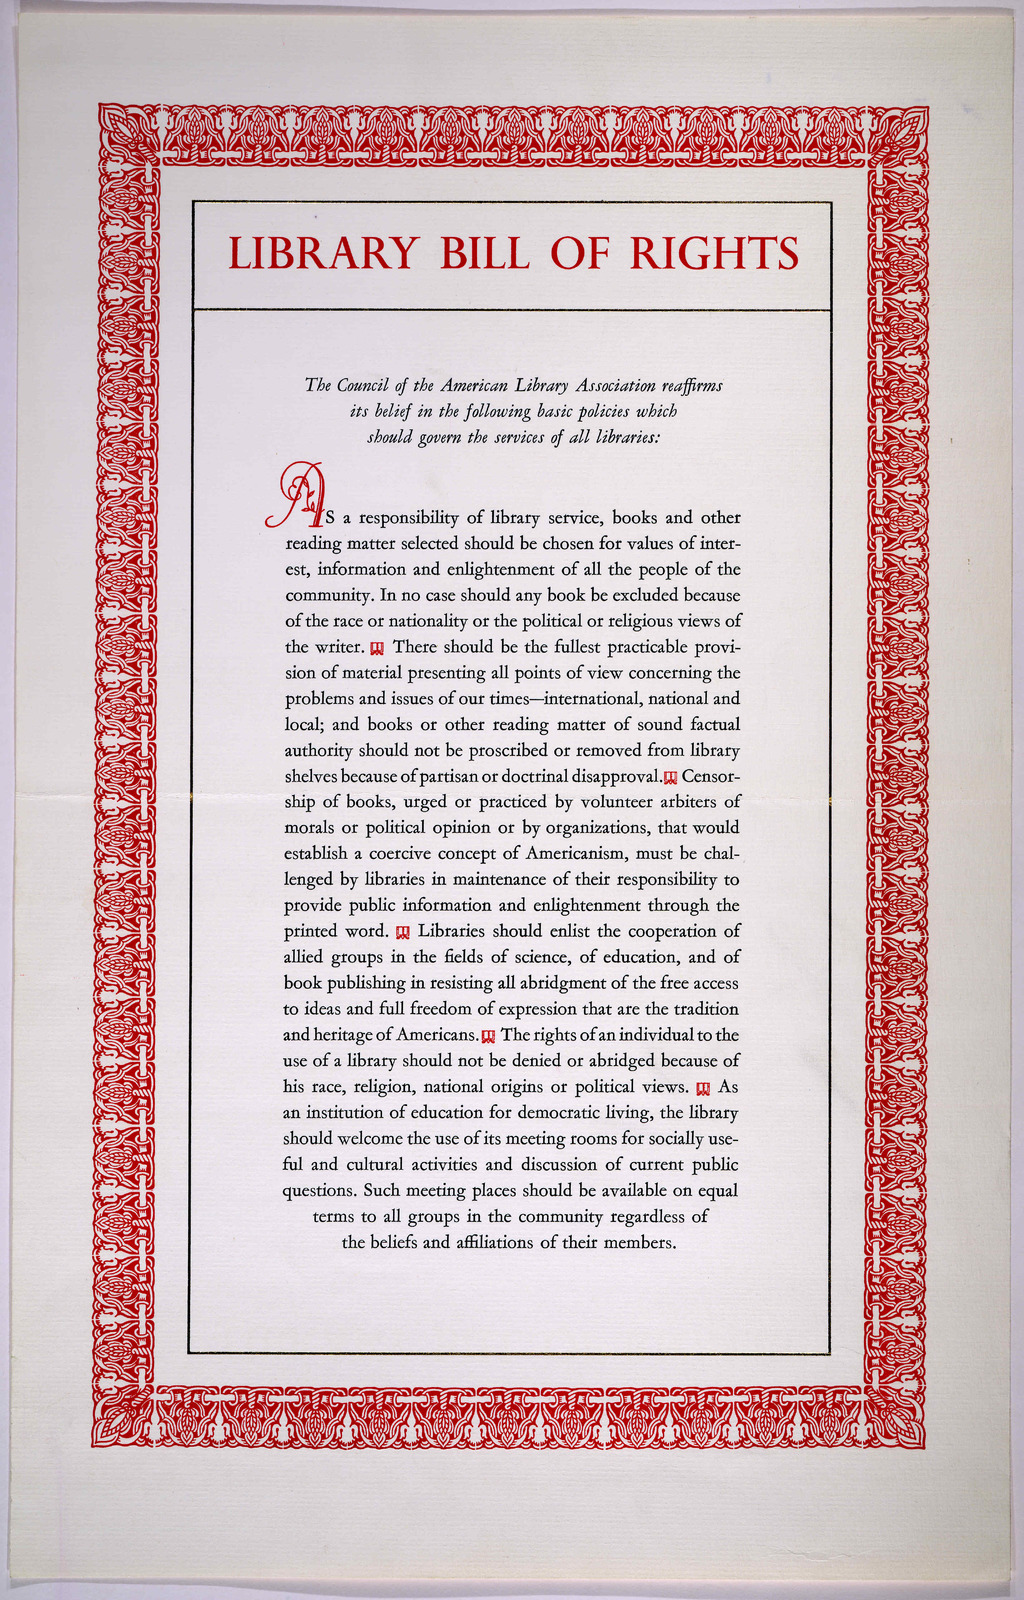 Library bill of rights. [Chicago, Printed by the Norman Press, 1962].